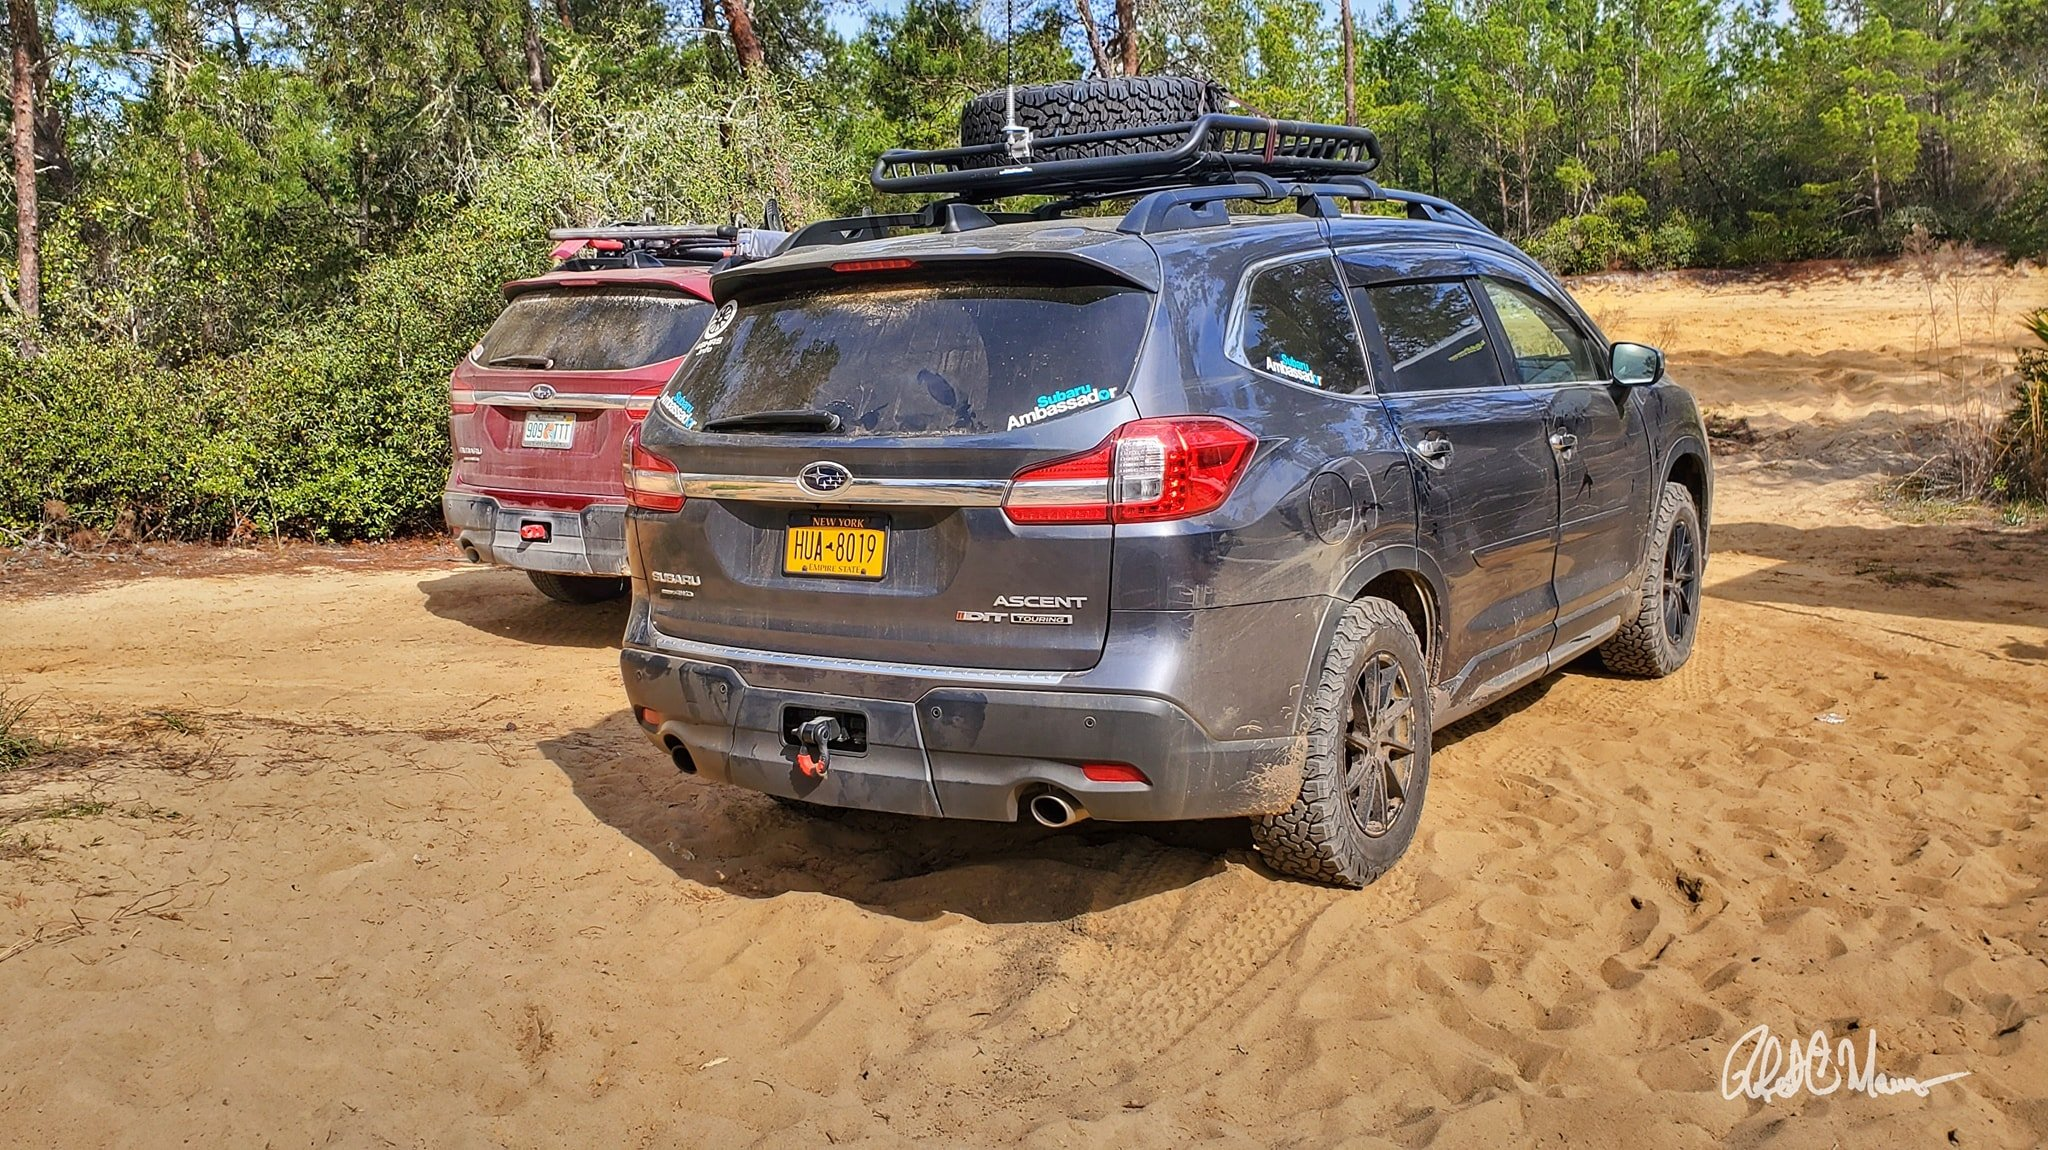 #AscentAdventure: Off Roading in Ocala National Forest